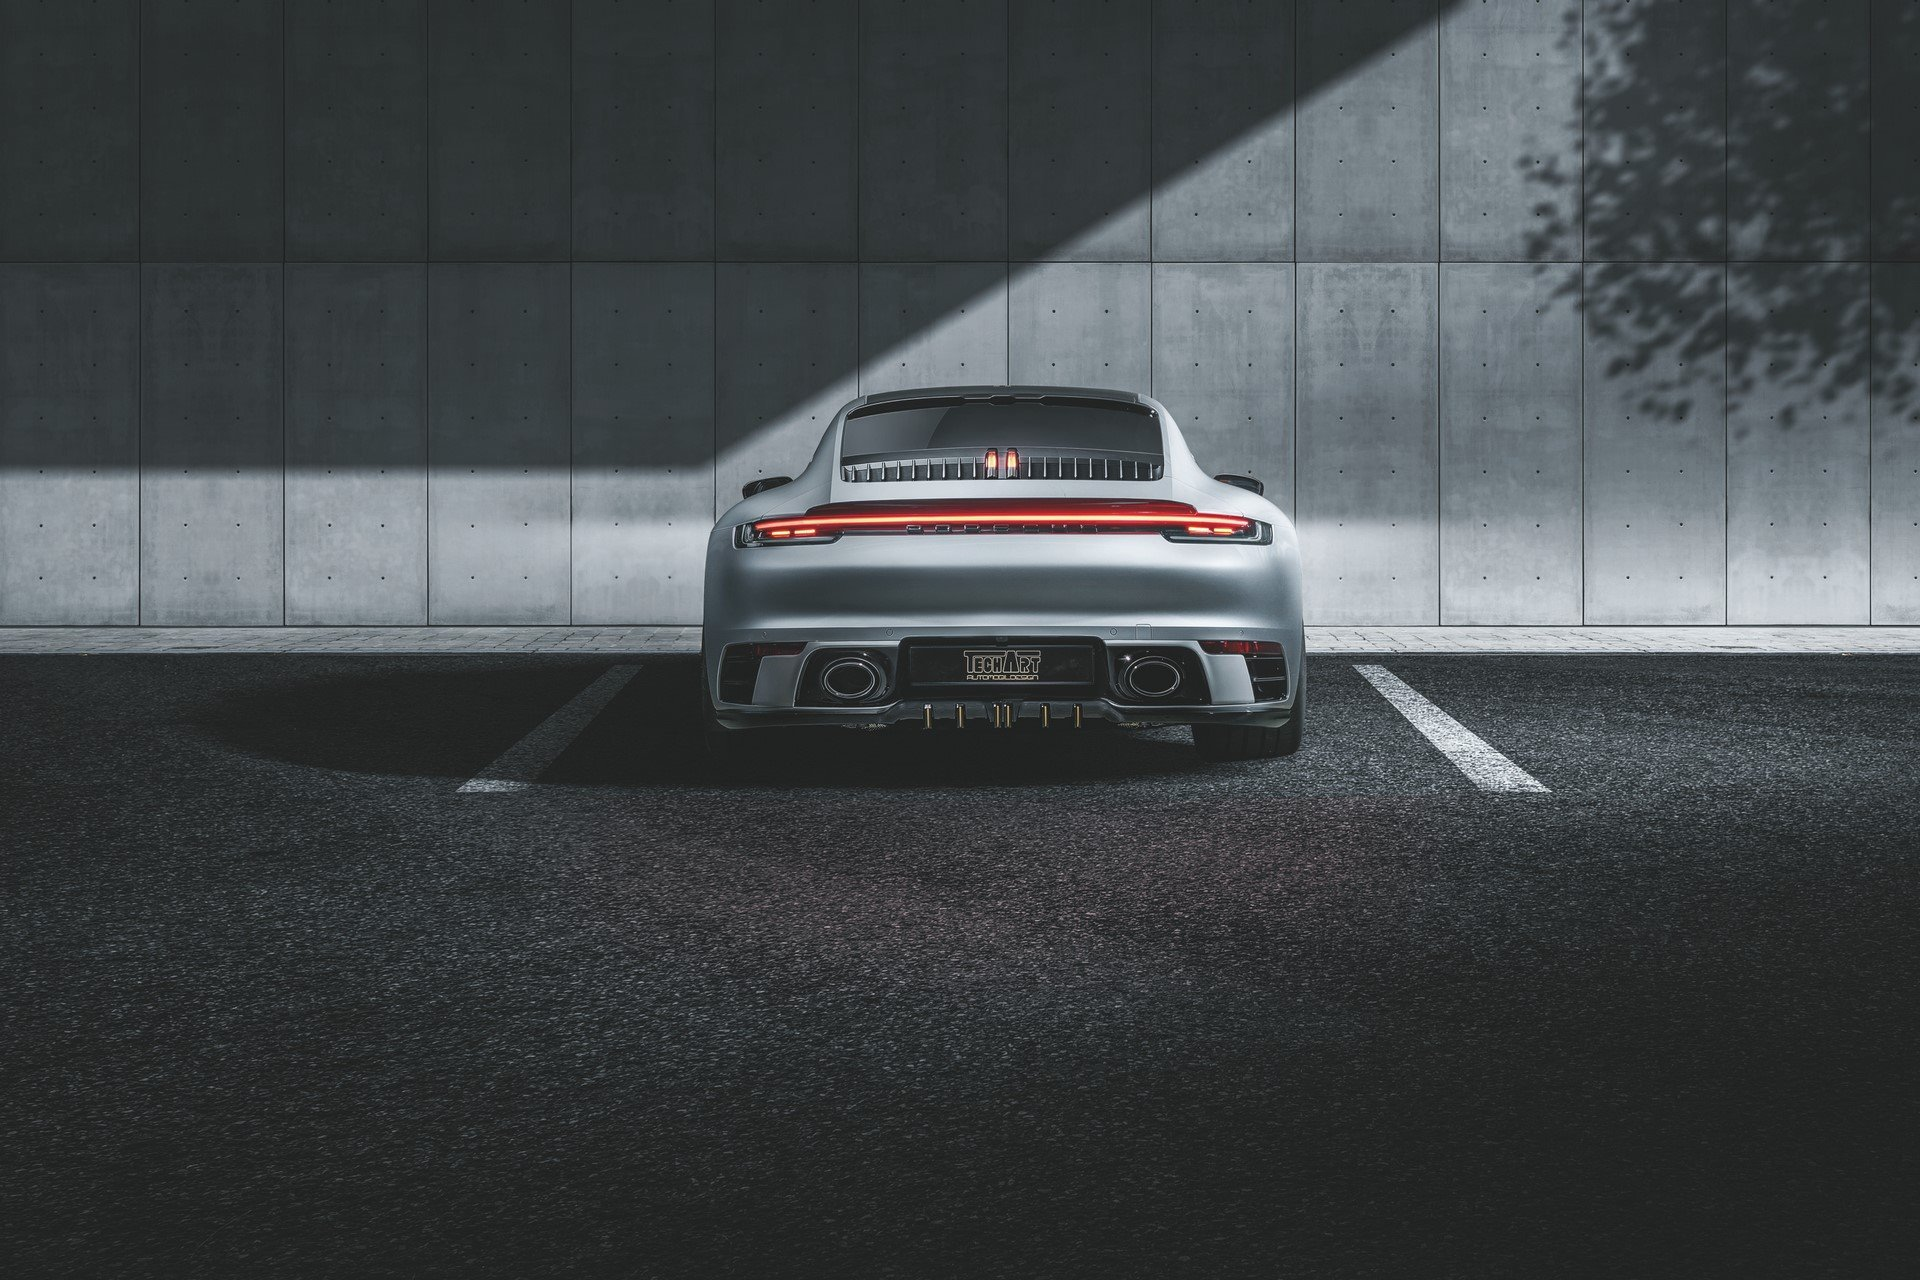 Porsche-911-Carrera-4S-by-TechArt-12